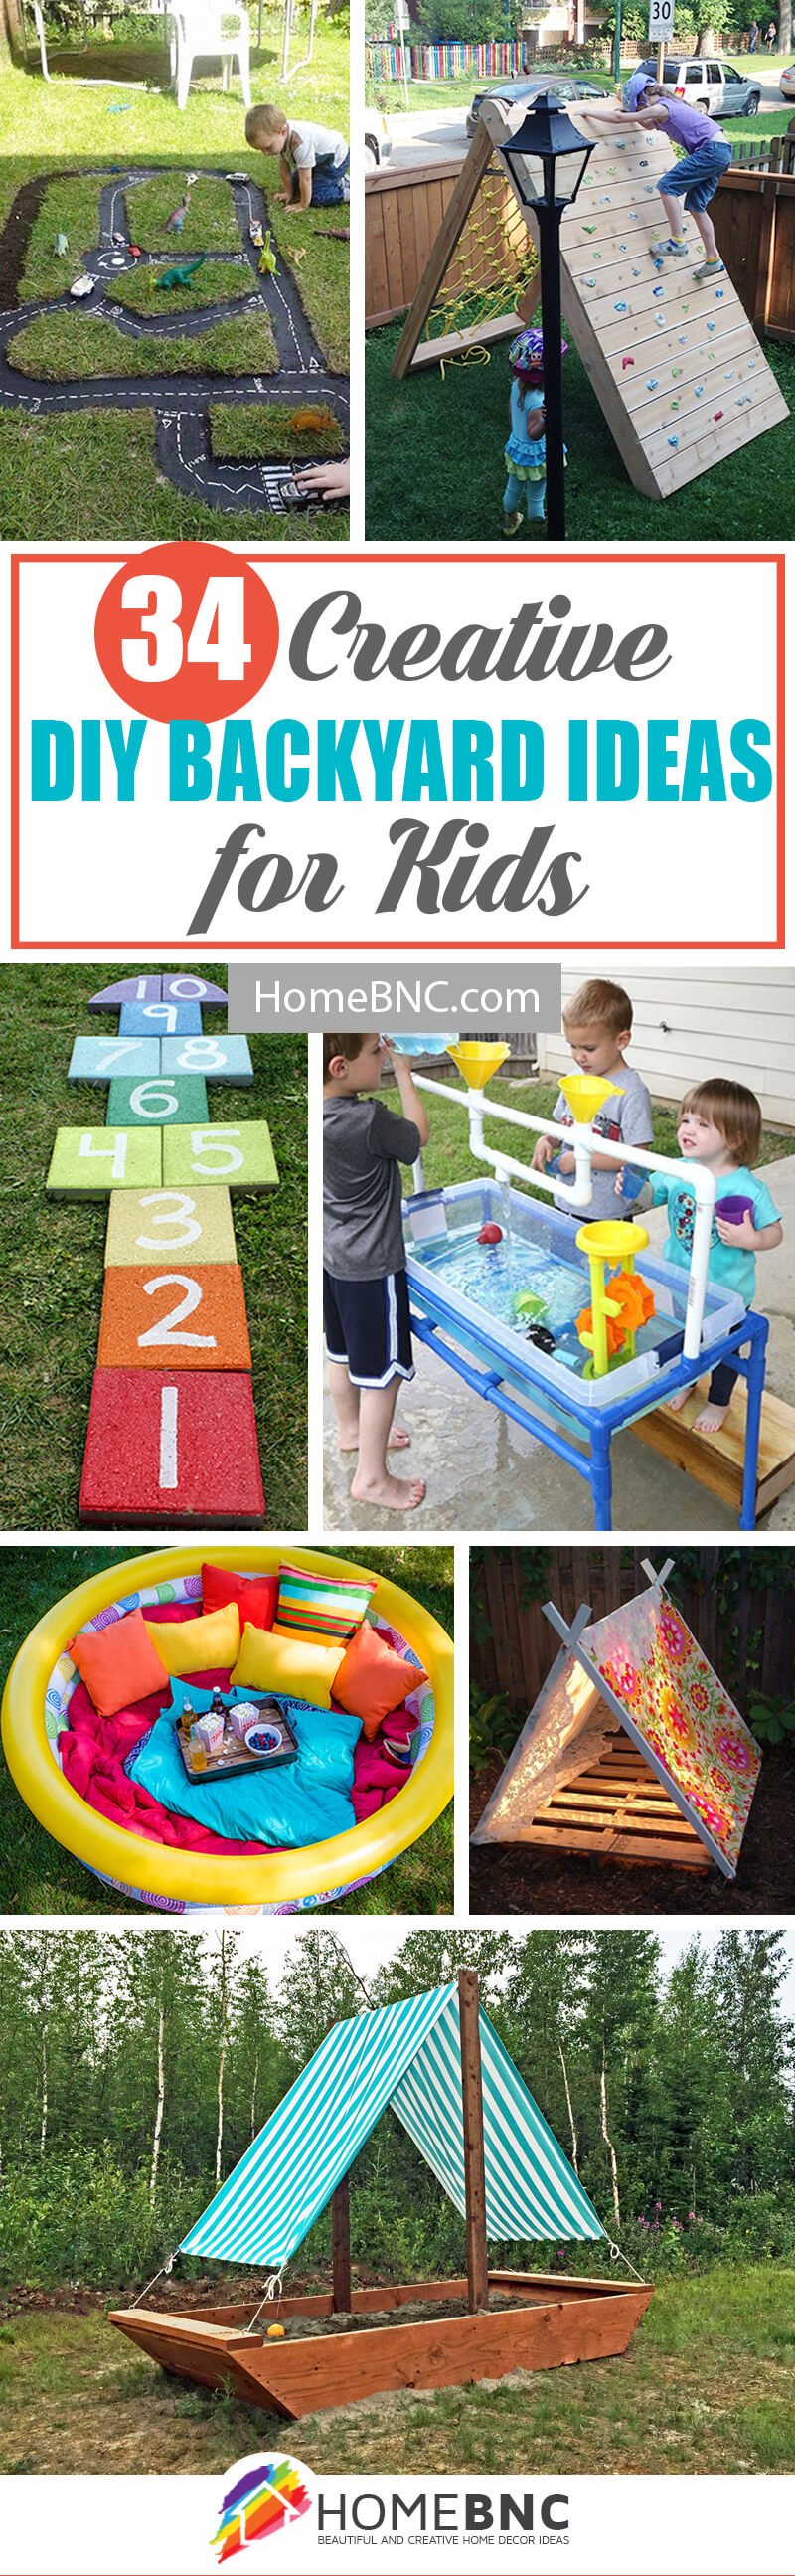 34 Best Diy Backyard Ideas And Designs For Kids In 2019 within 12 Smart Concepts of How to Upgrade Kid Friendly Backyard Ideas